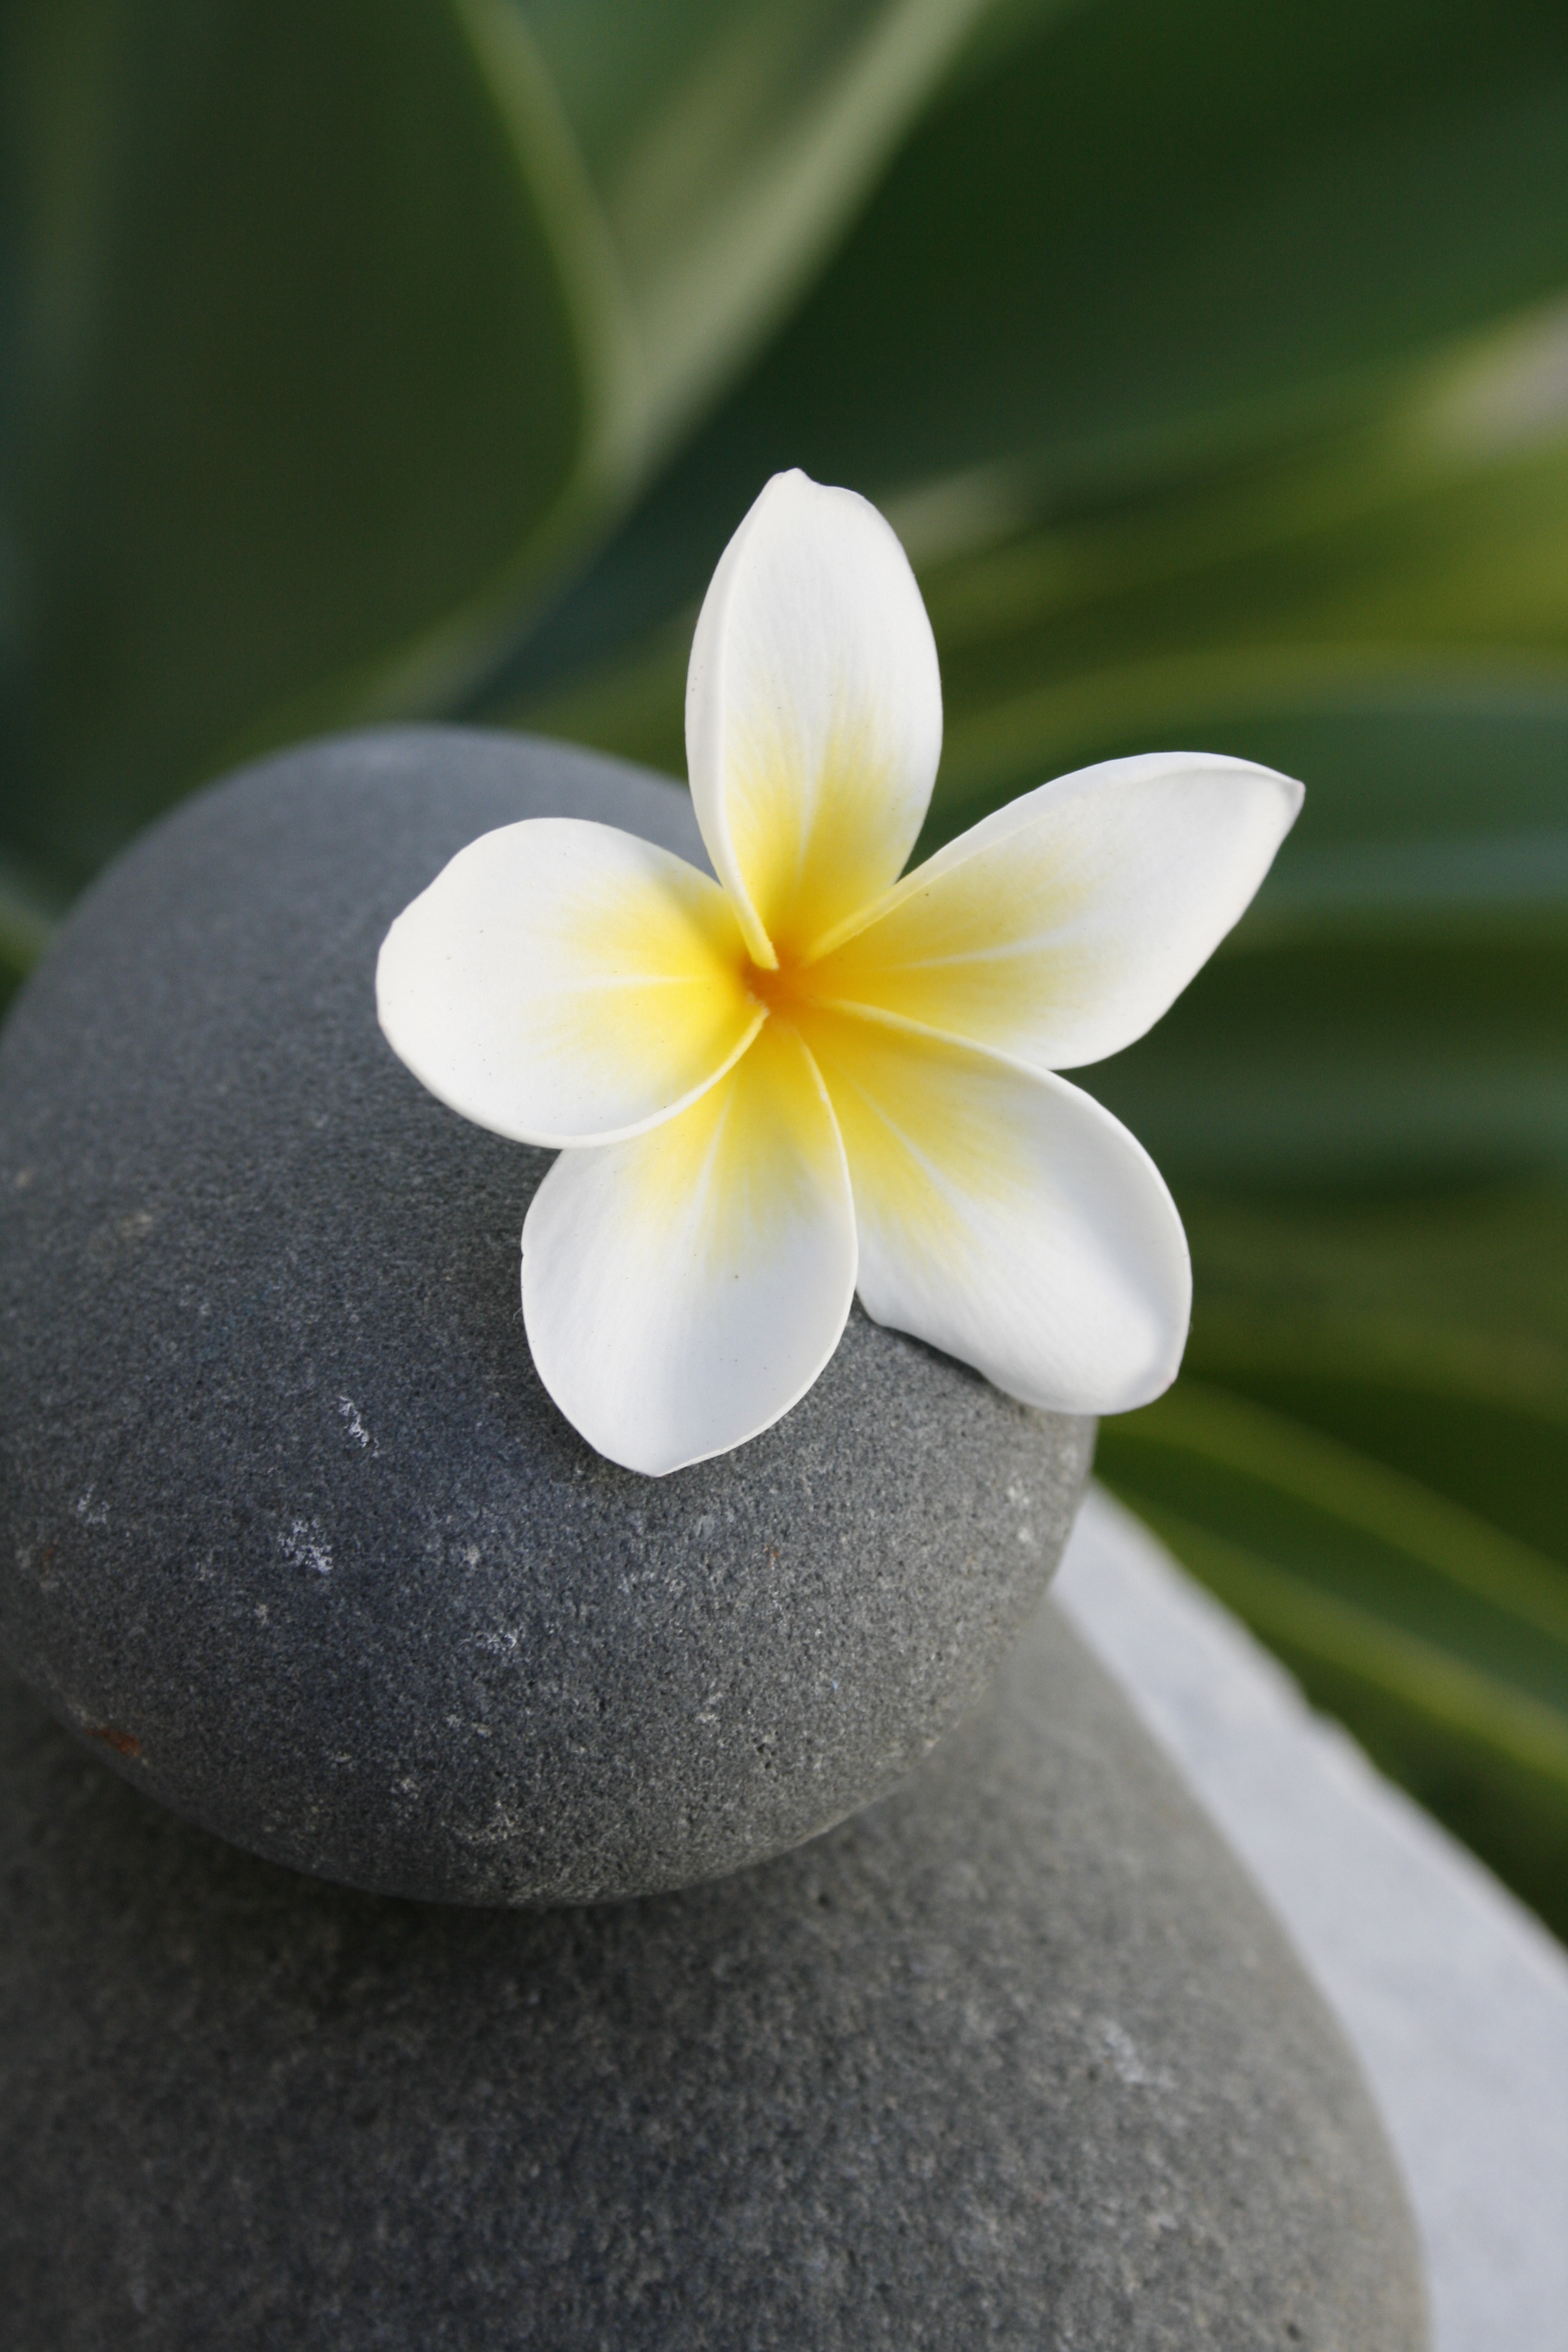 107095 download wallpaper Flowers, Rock, Balance, Flower, Stone, Meditation screensavers and pictures for free